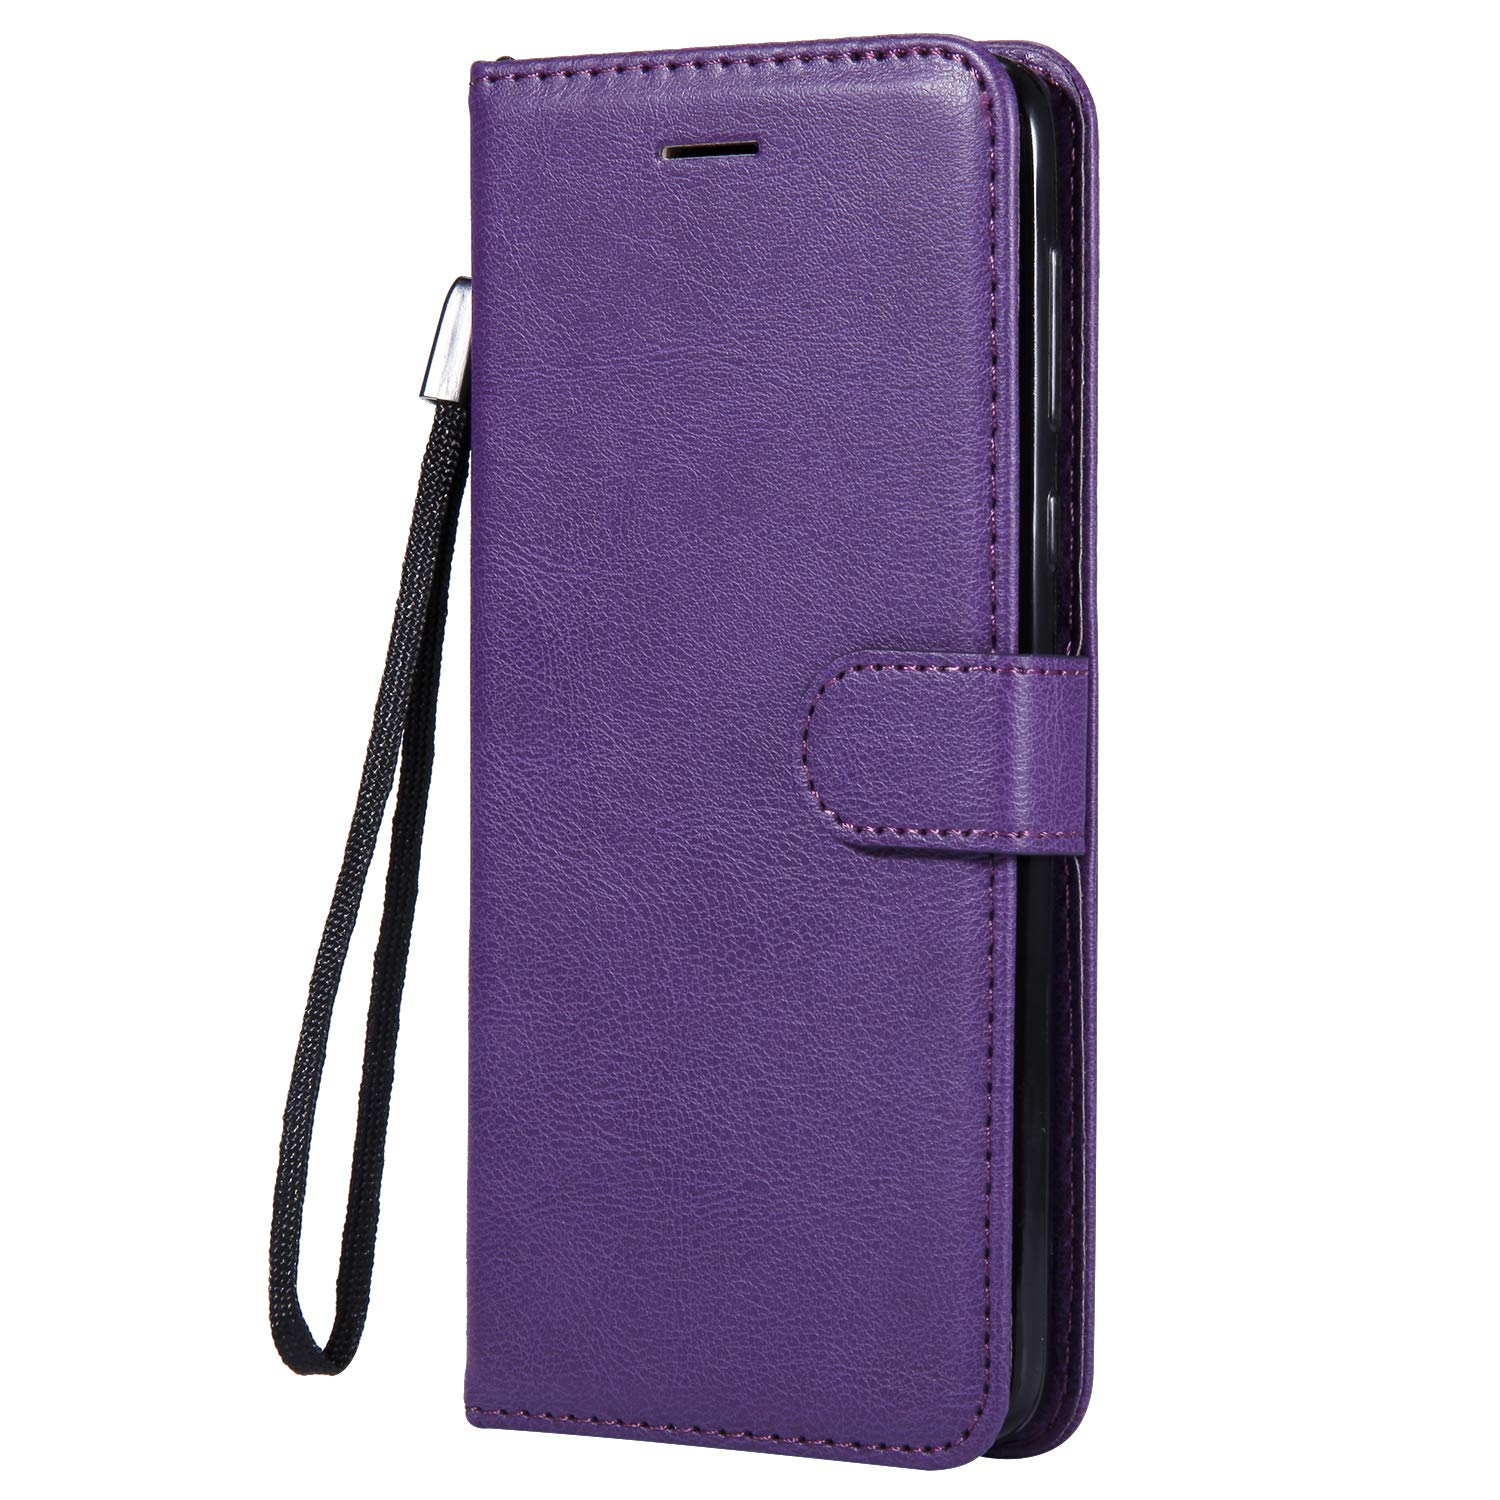 Moto G6 Plus Case, AIIYG DS Classic Pure Color [Kickstand Feature] Flip Folio Leather Wallet Case with ID and Credit Card Pockets for Moto G6 Plus Purple